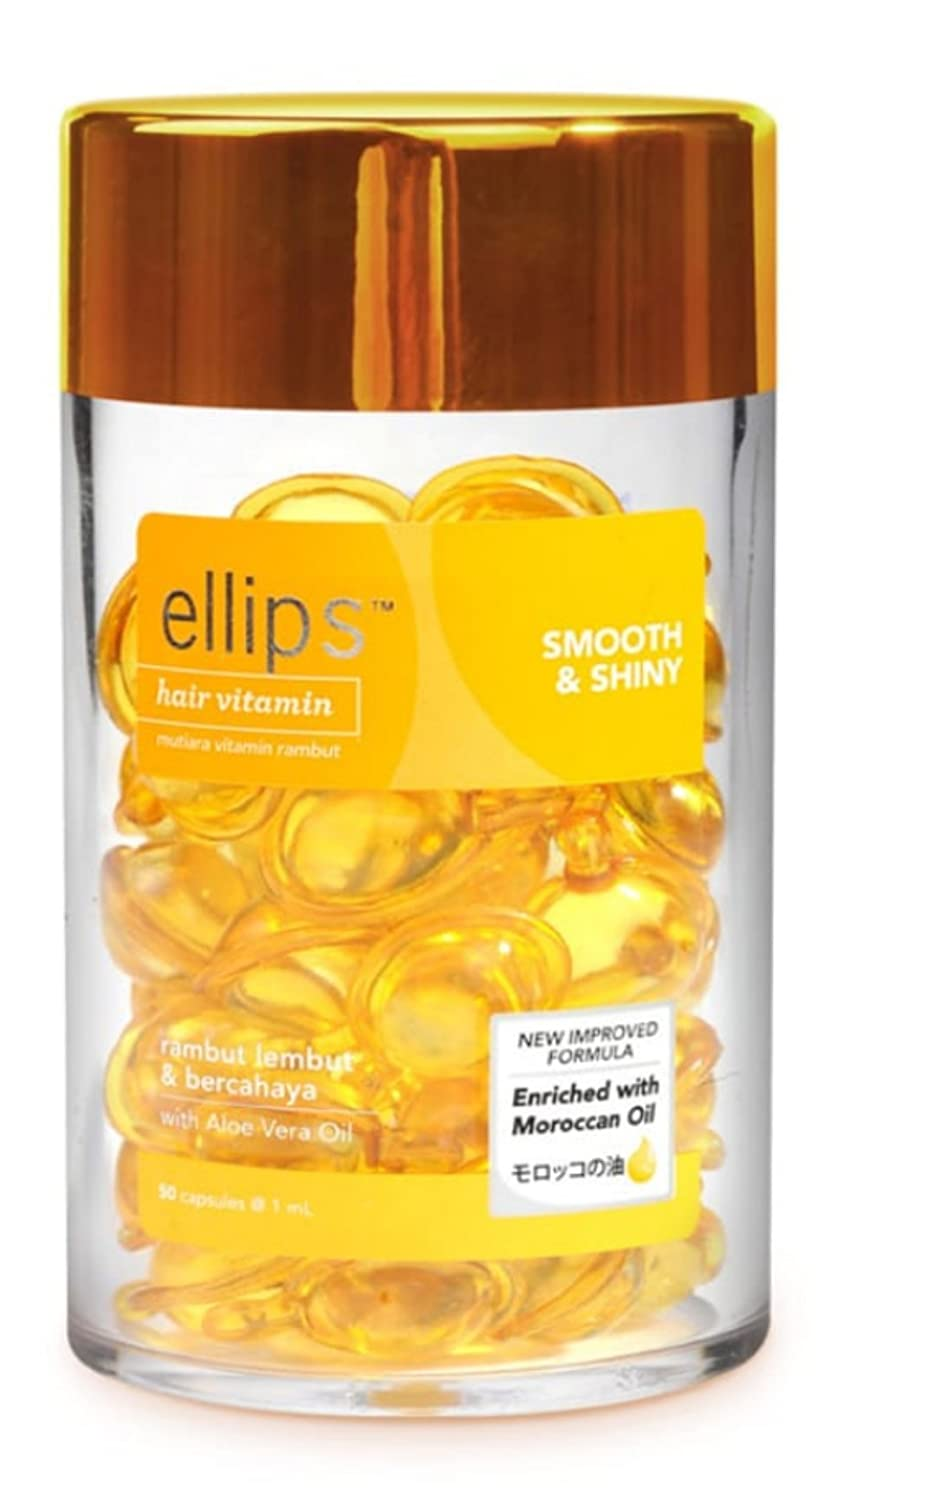 Ellips Hair Vitamin (Moroccan Oil) - Smooth & Shiny, 50 capsules